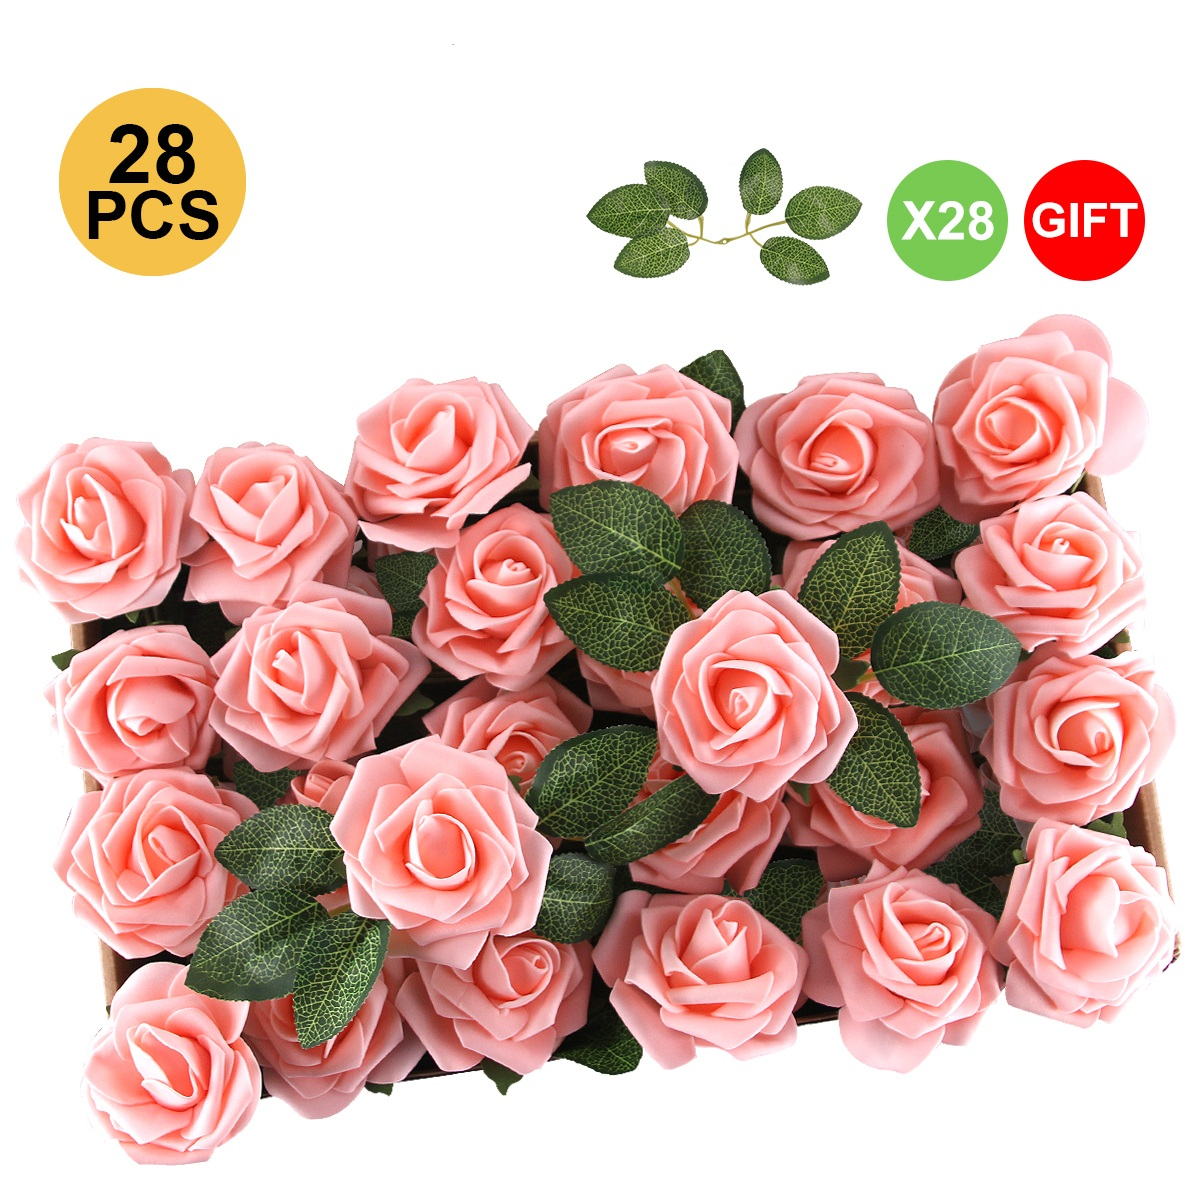 12 Small Red Roses Foam Flowers Miniature Foam Roses Craft Flowers Artificial Flowers Boutonniere Flowers Fake Red Flowers Decorative Roses